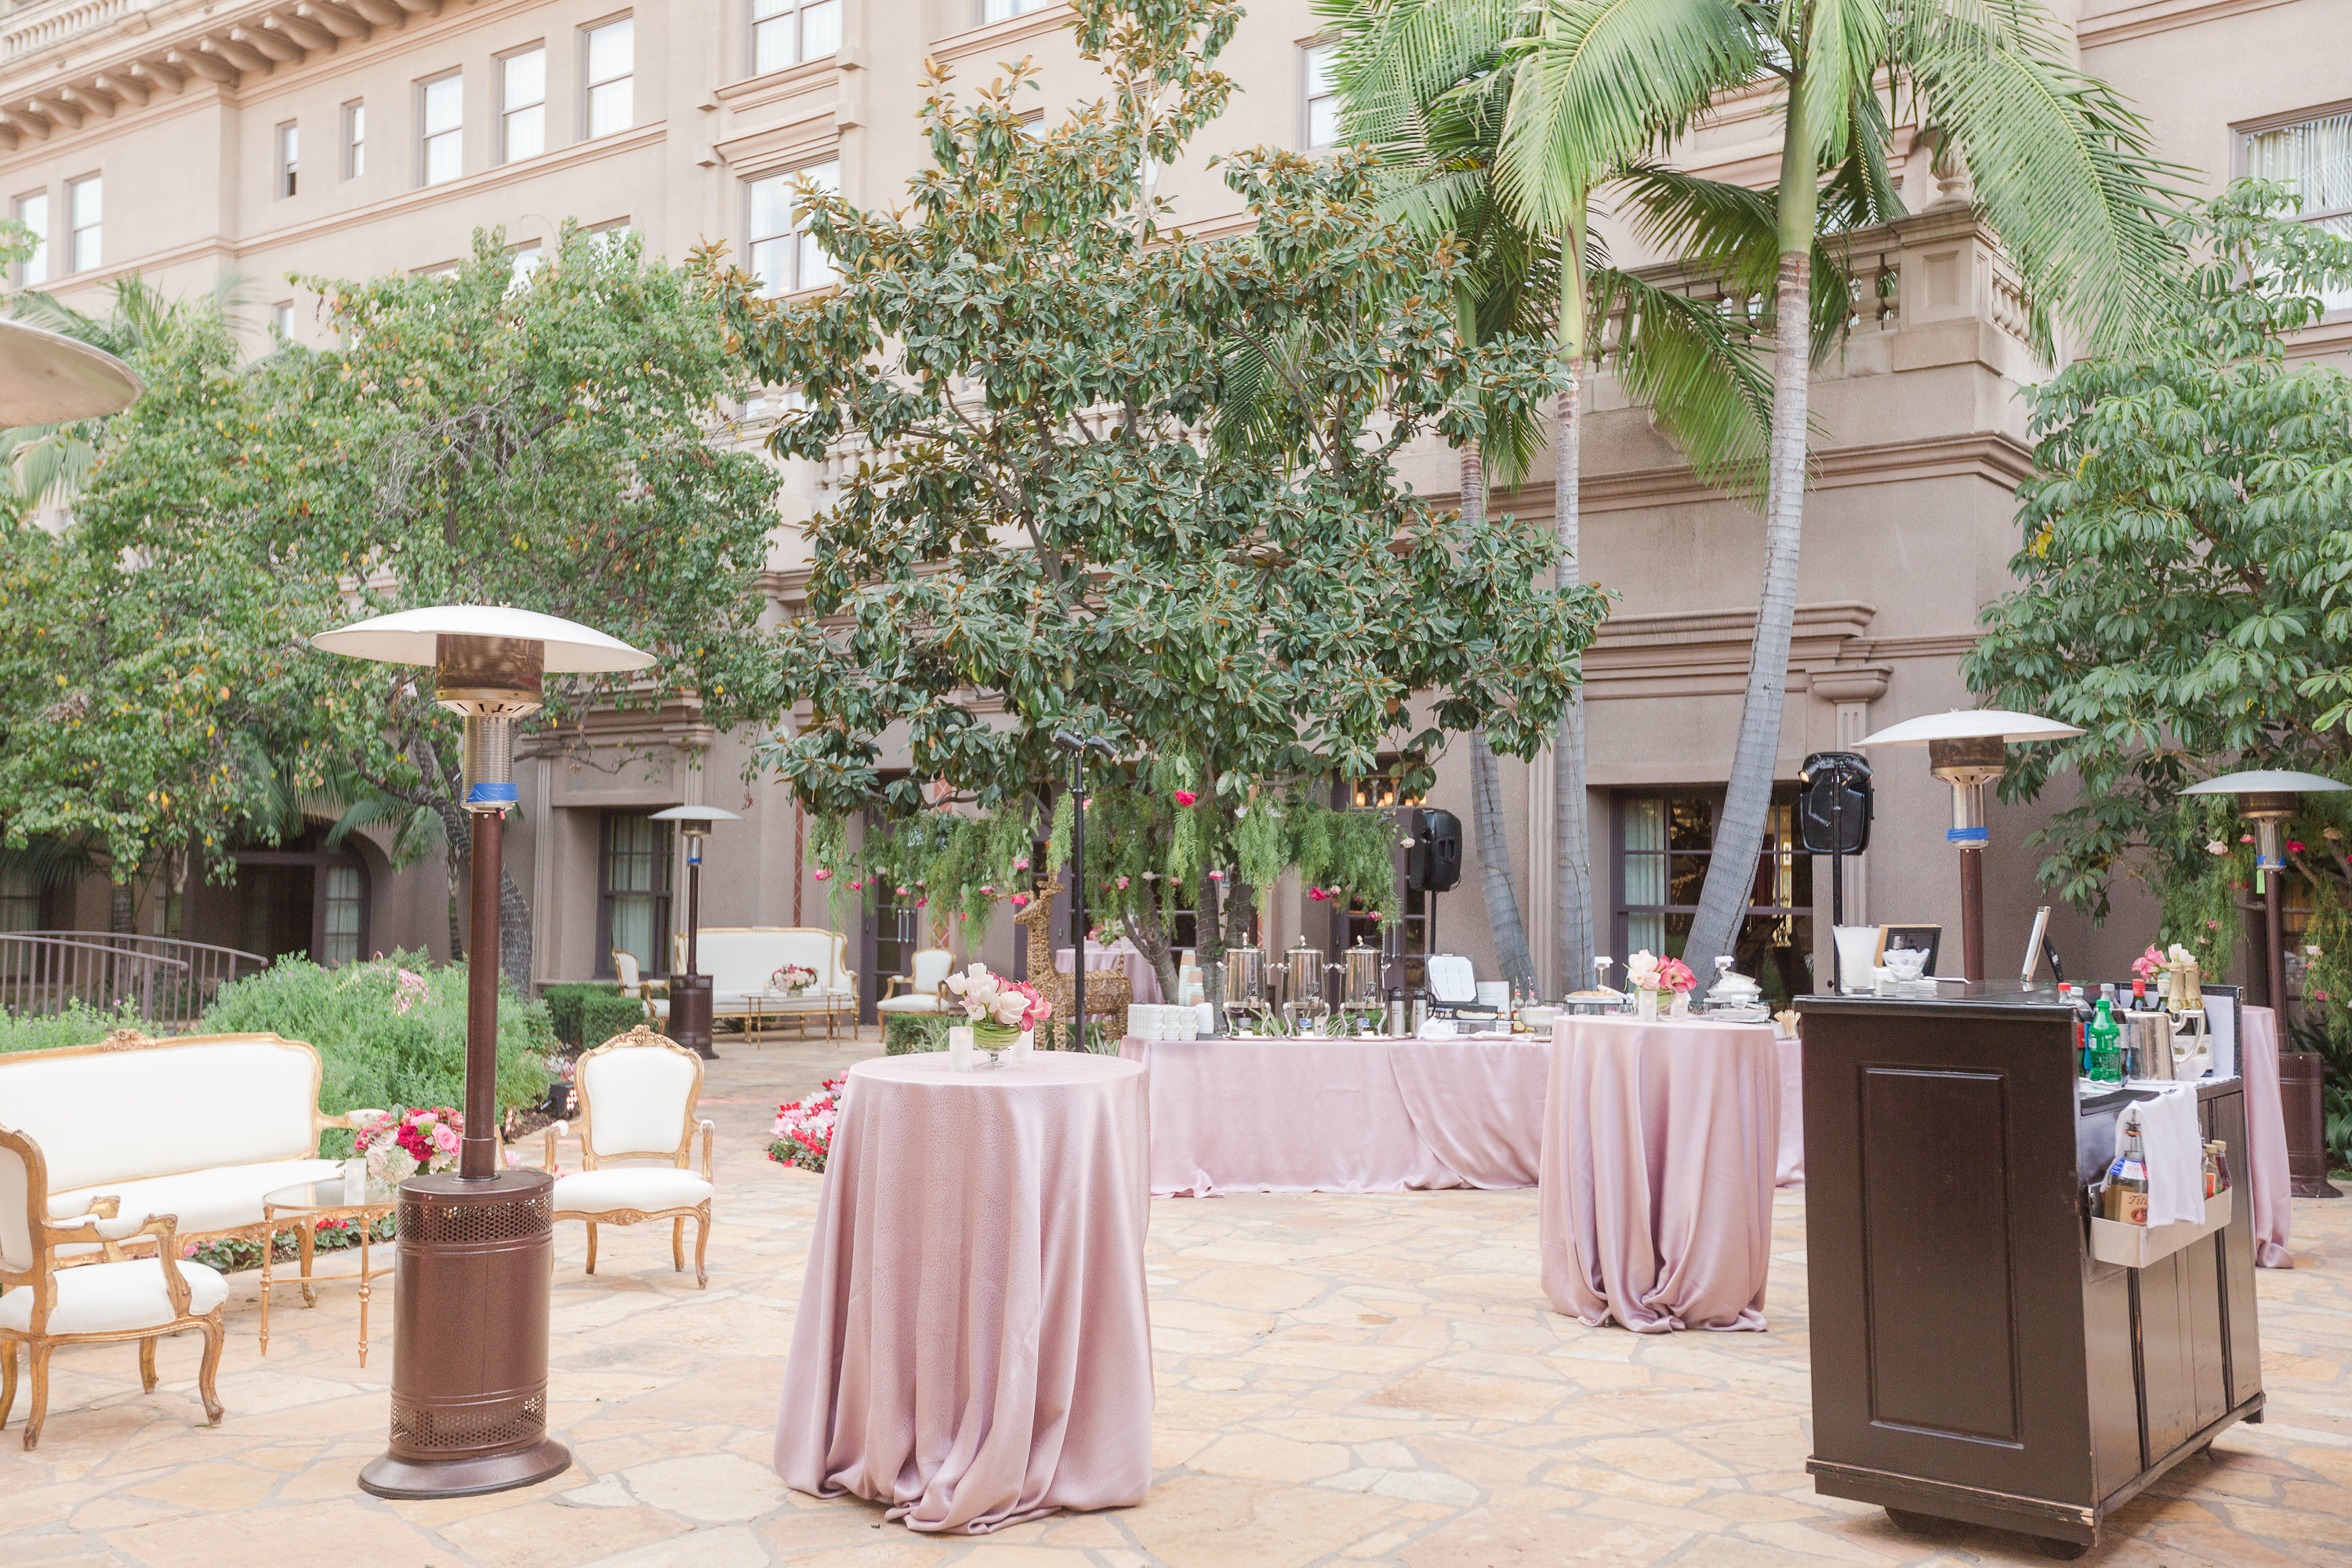 Wedding Vendor Appreciation Reception - The Langham Huntington Hotel